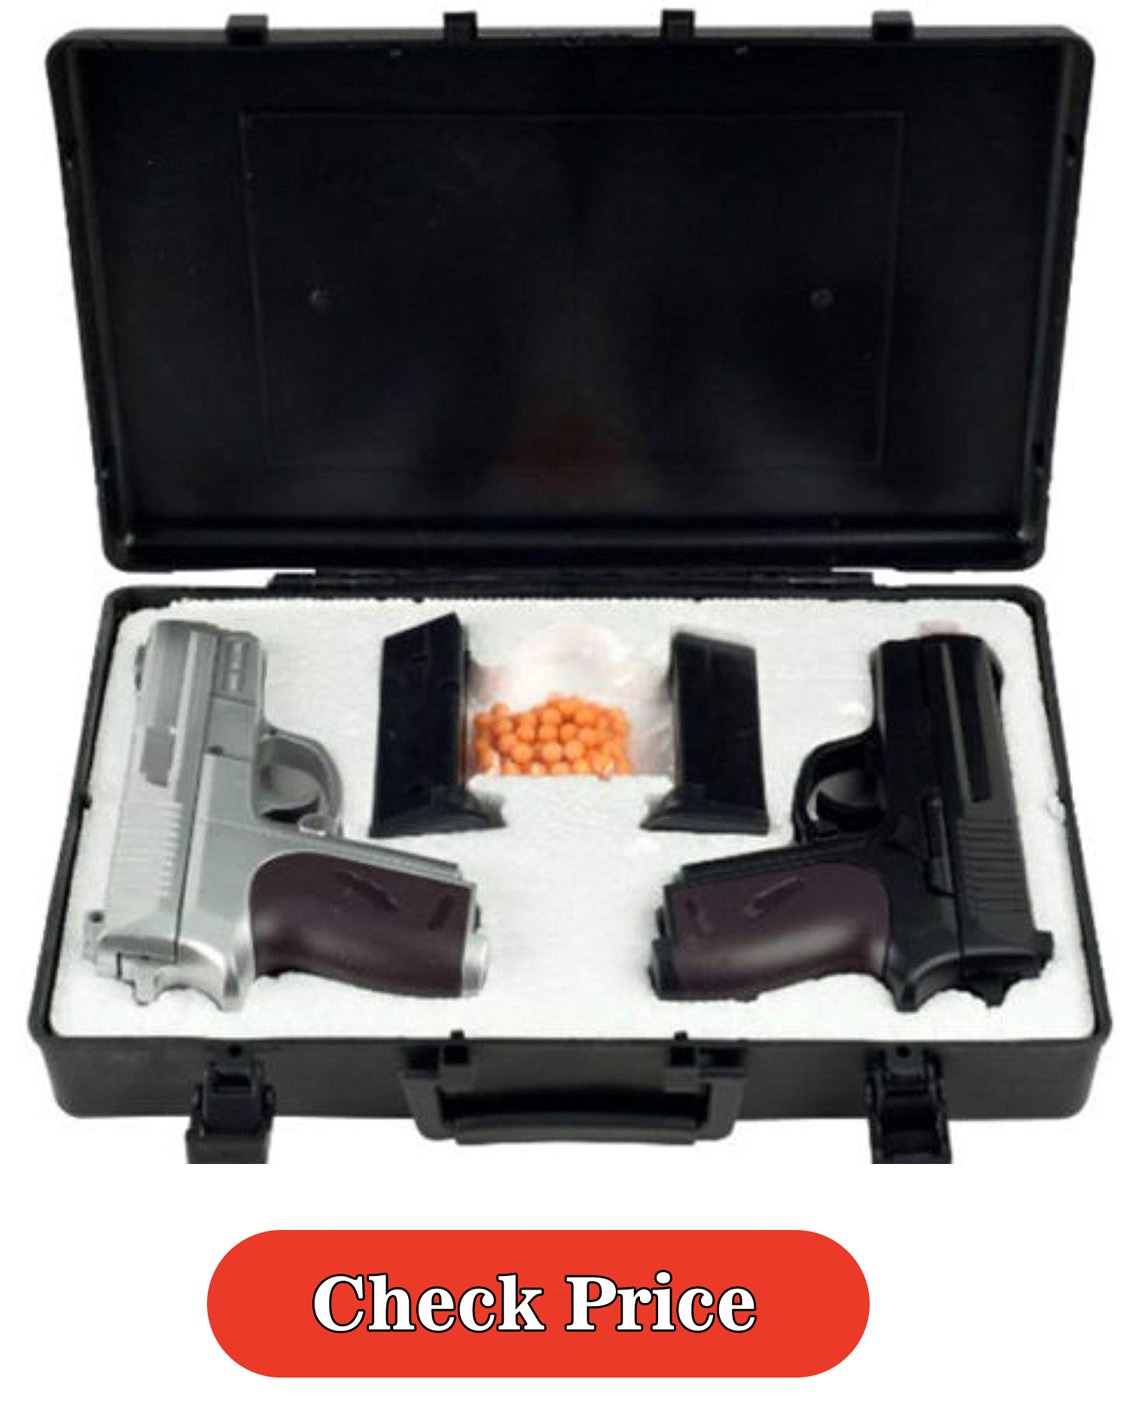 NEW CYMA TWIN SPRING AIRSOFT DUAL PISTOL COMBO